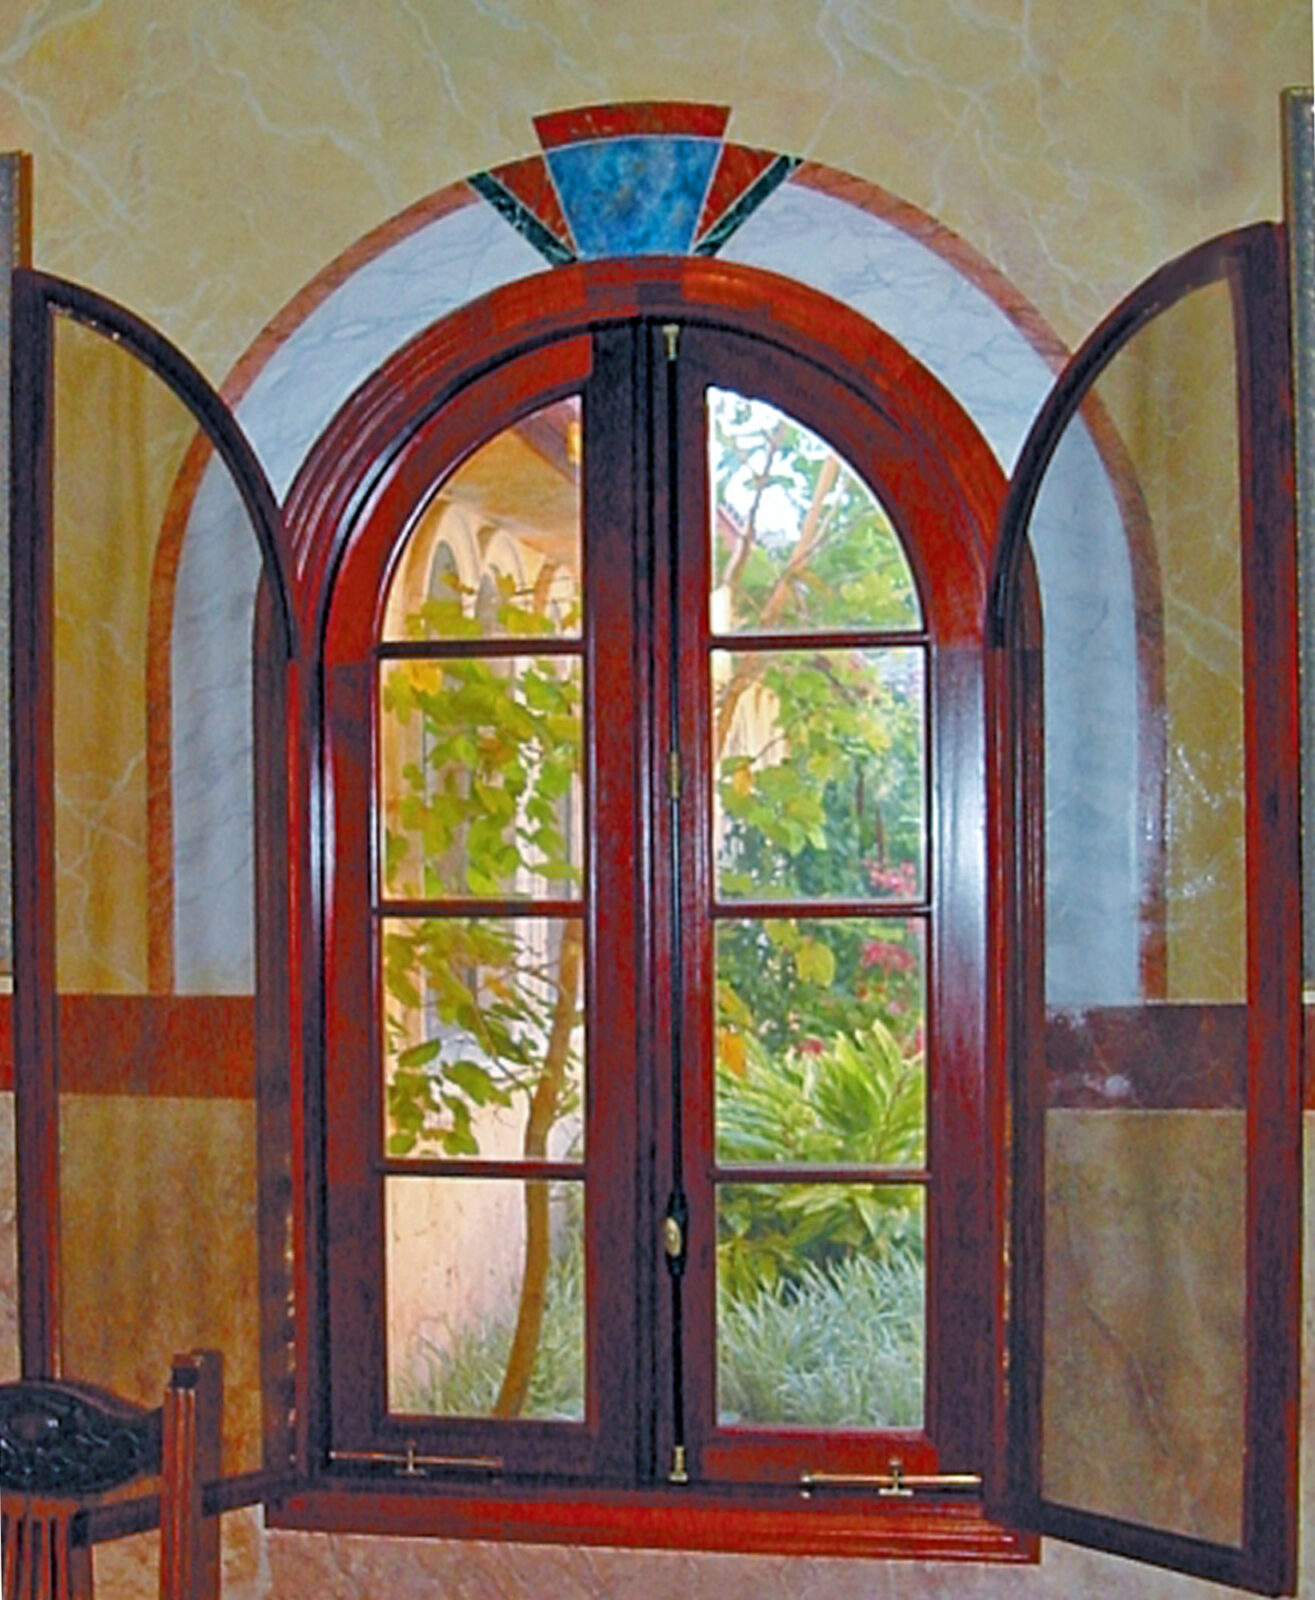 SANTA FE MAHOGANY CASEMENT WINDOWS.